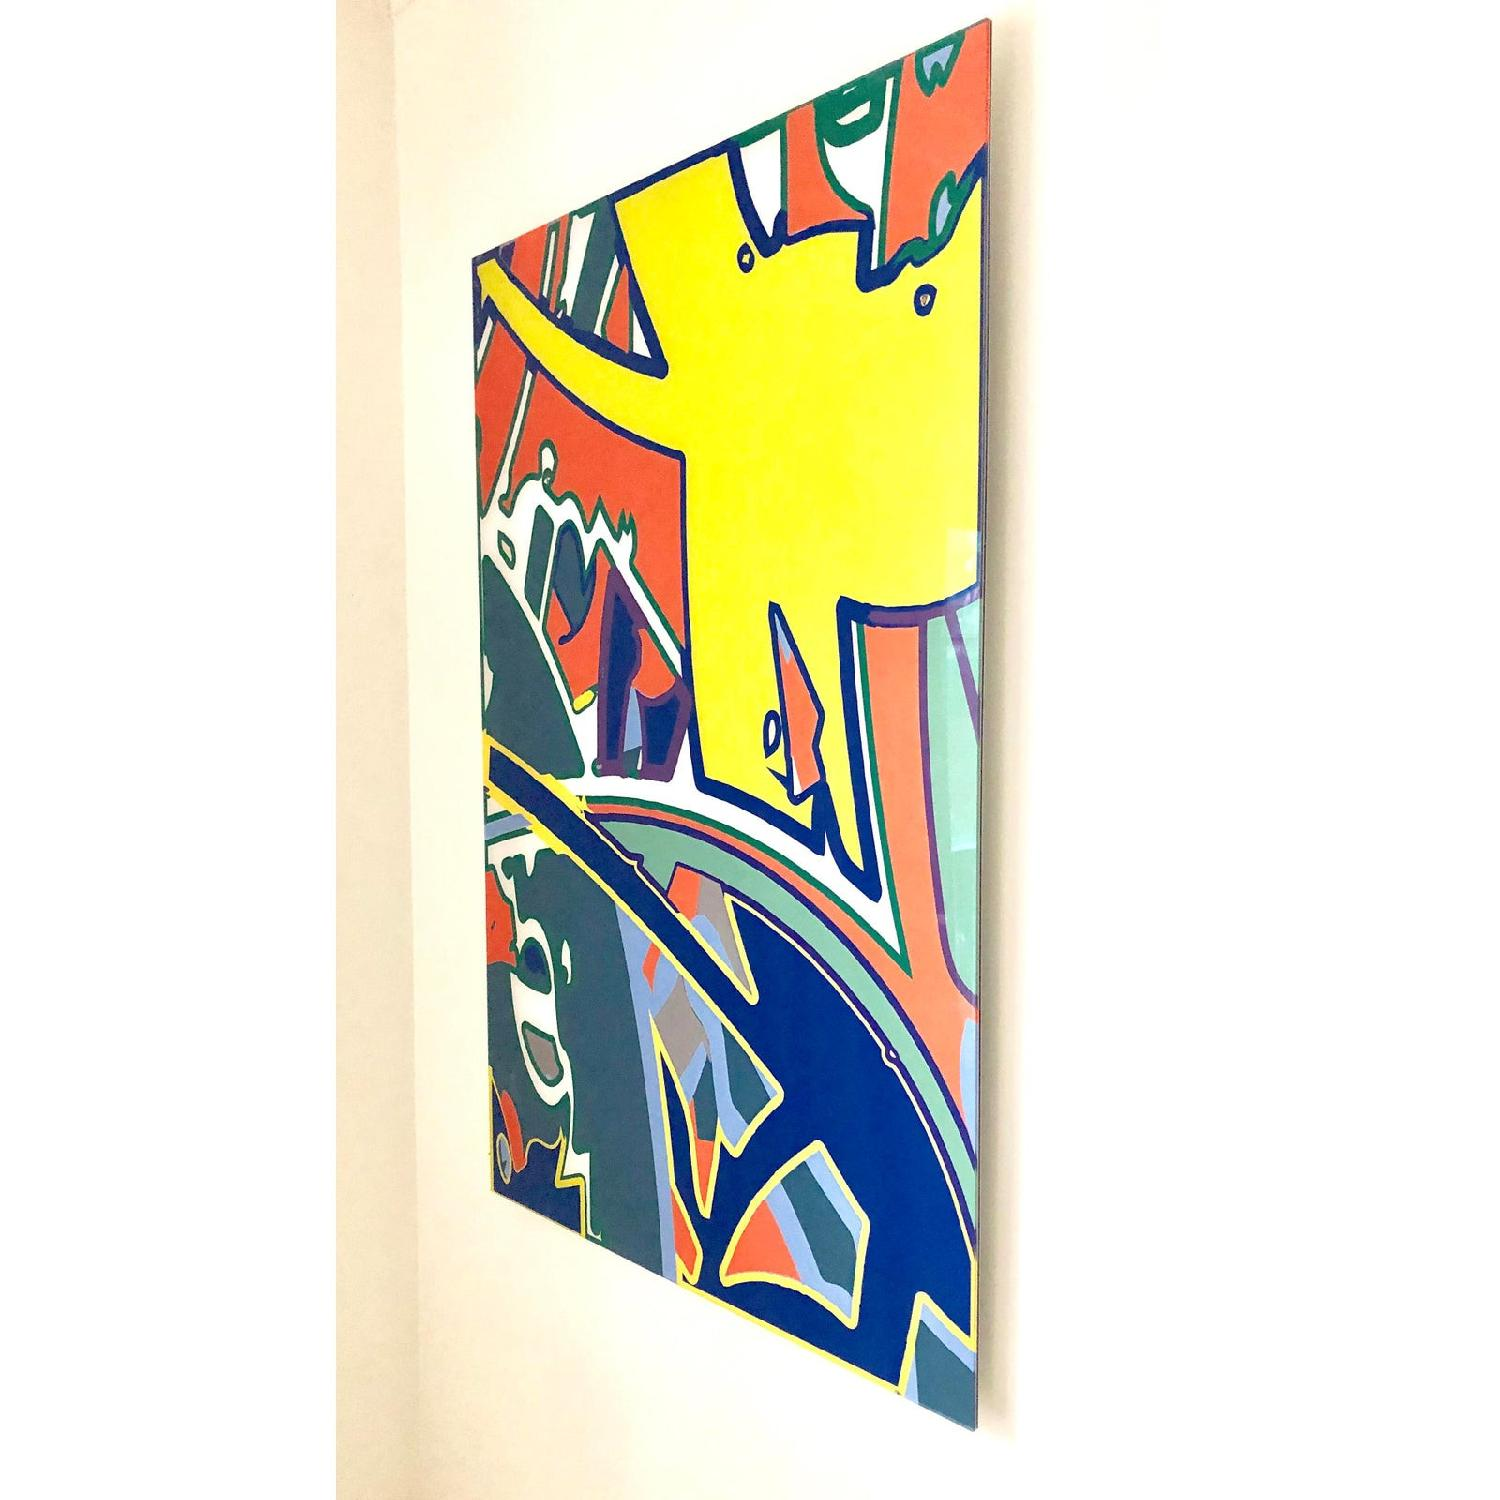 Keith Harring Style Graphic Art - image-2